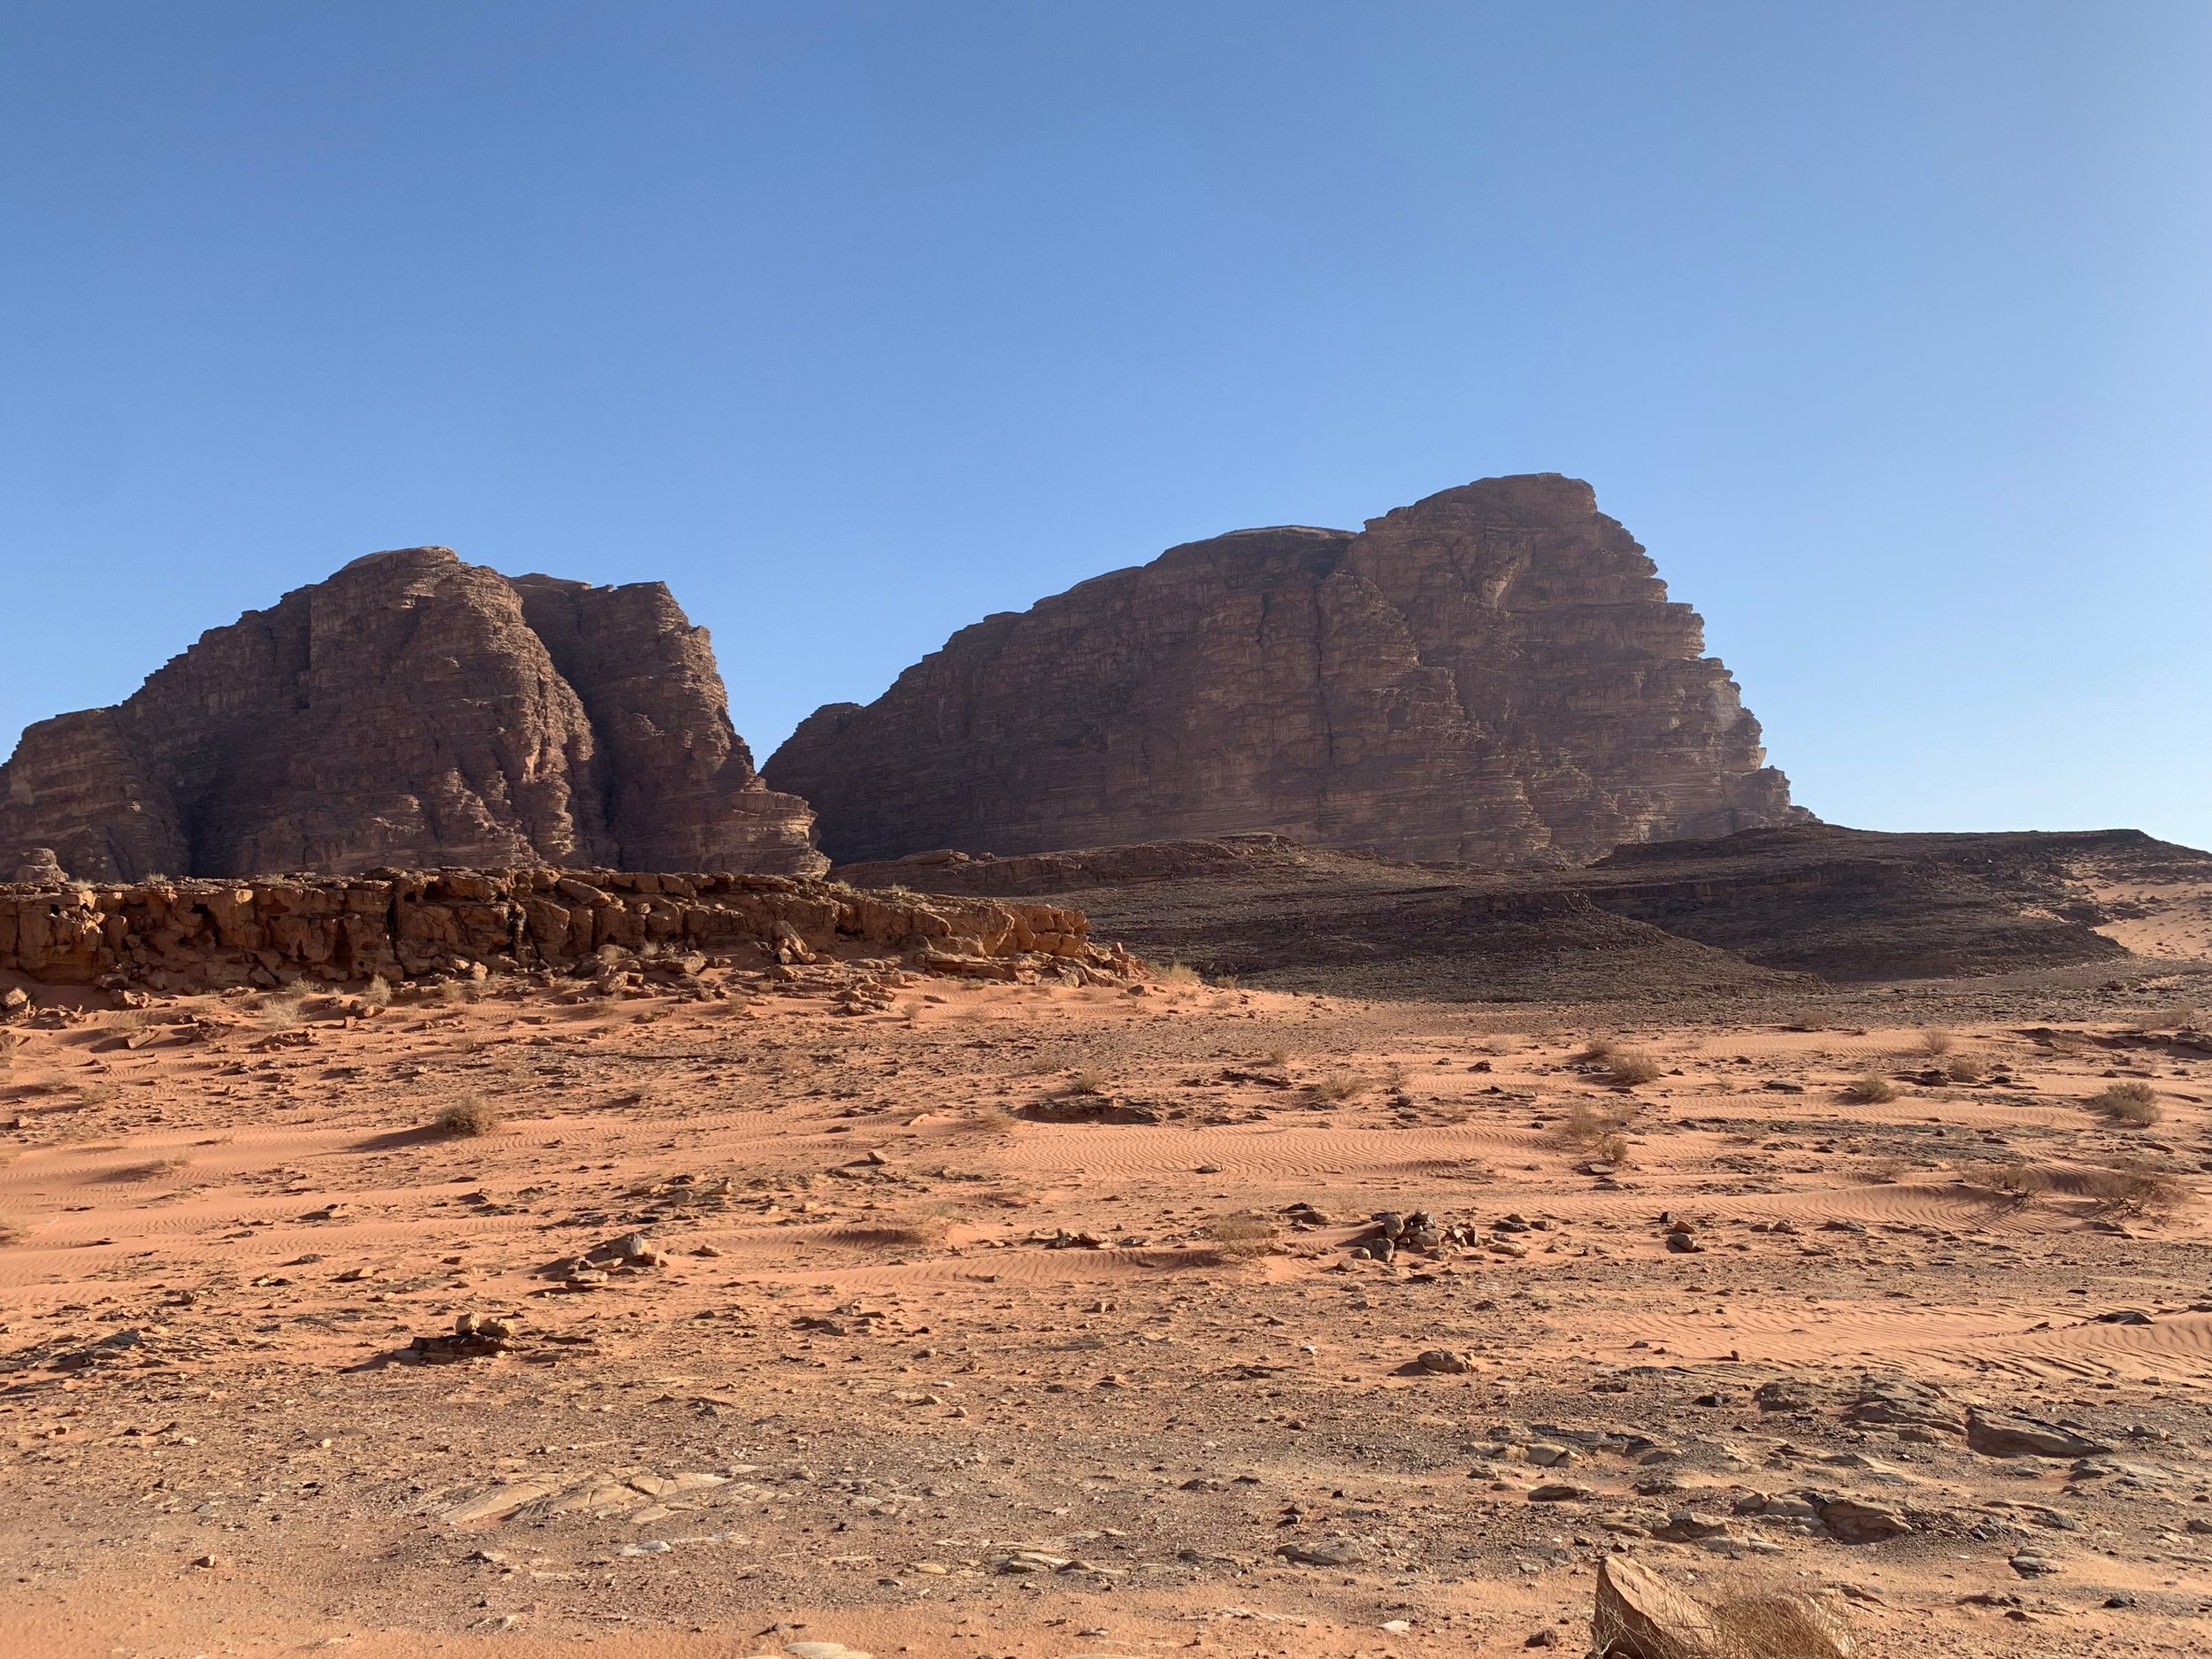 More pictures from the jeep tour in Wadi Rum! Photo credit: Russo, 2019